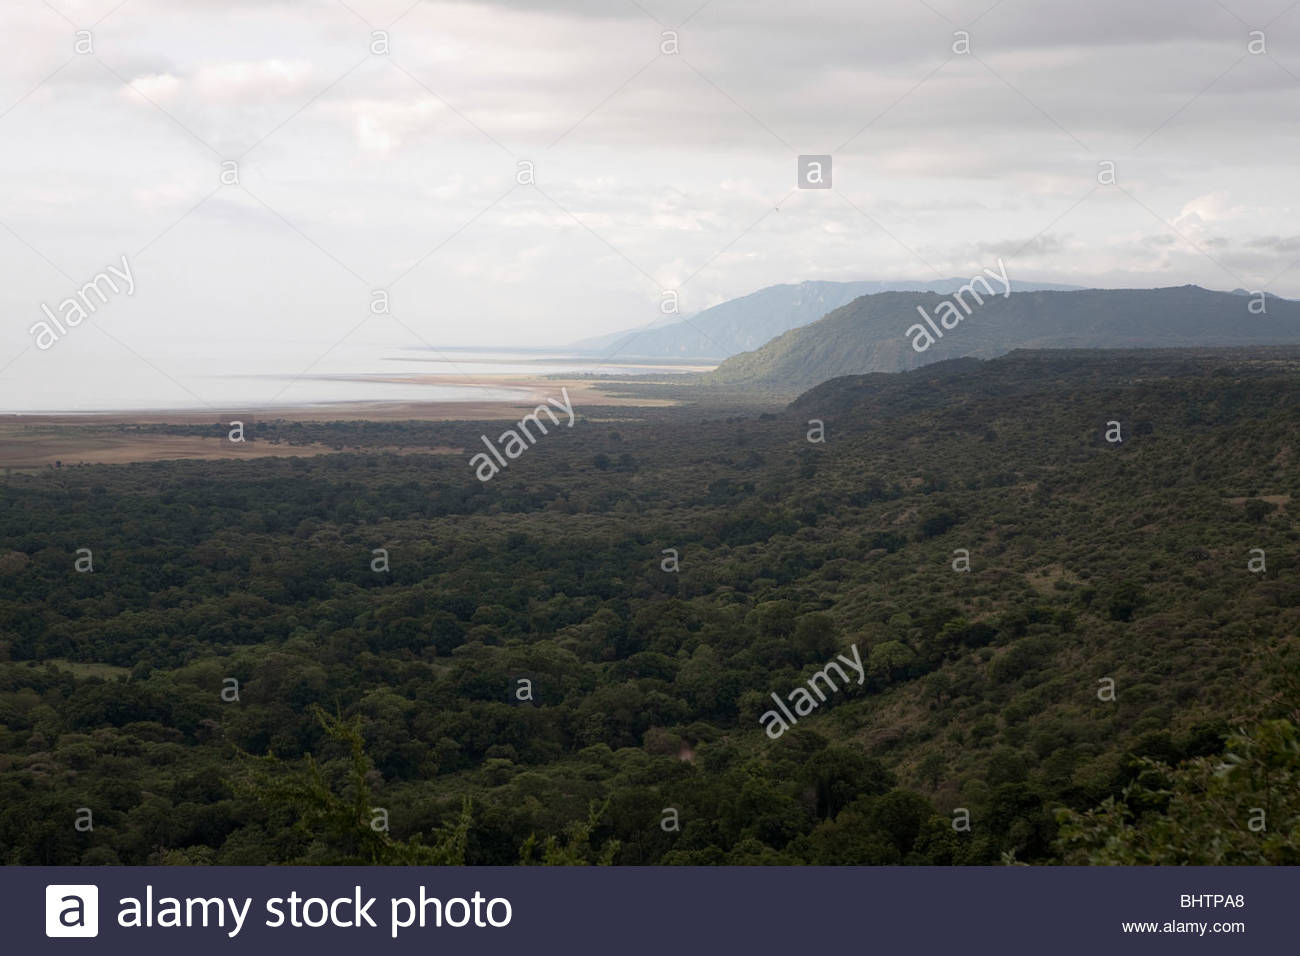 Rift valley at Lake Manyara, Tanzania. - Stock Image